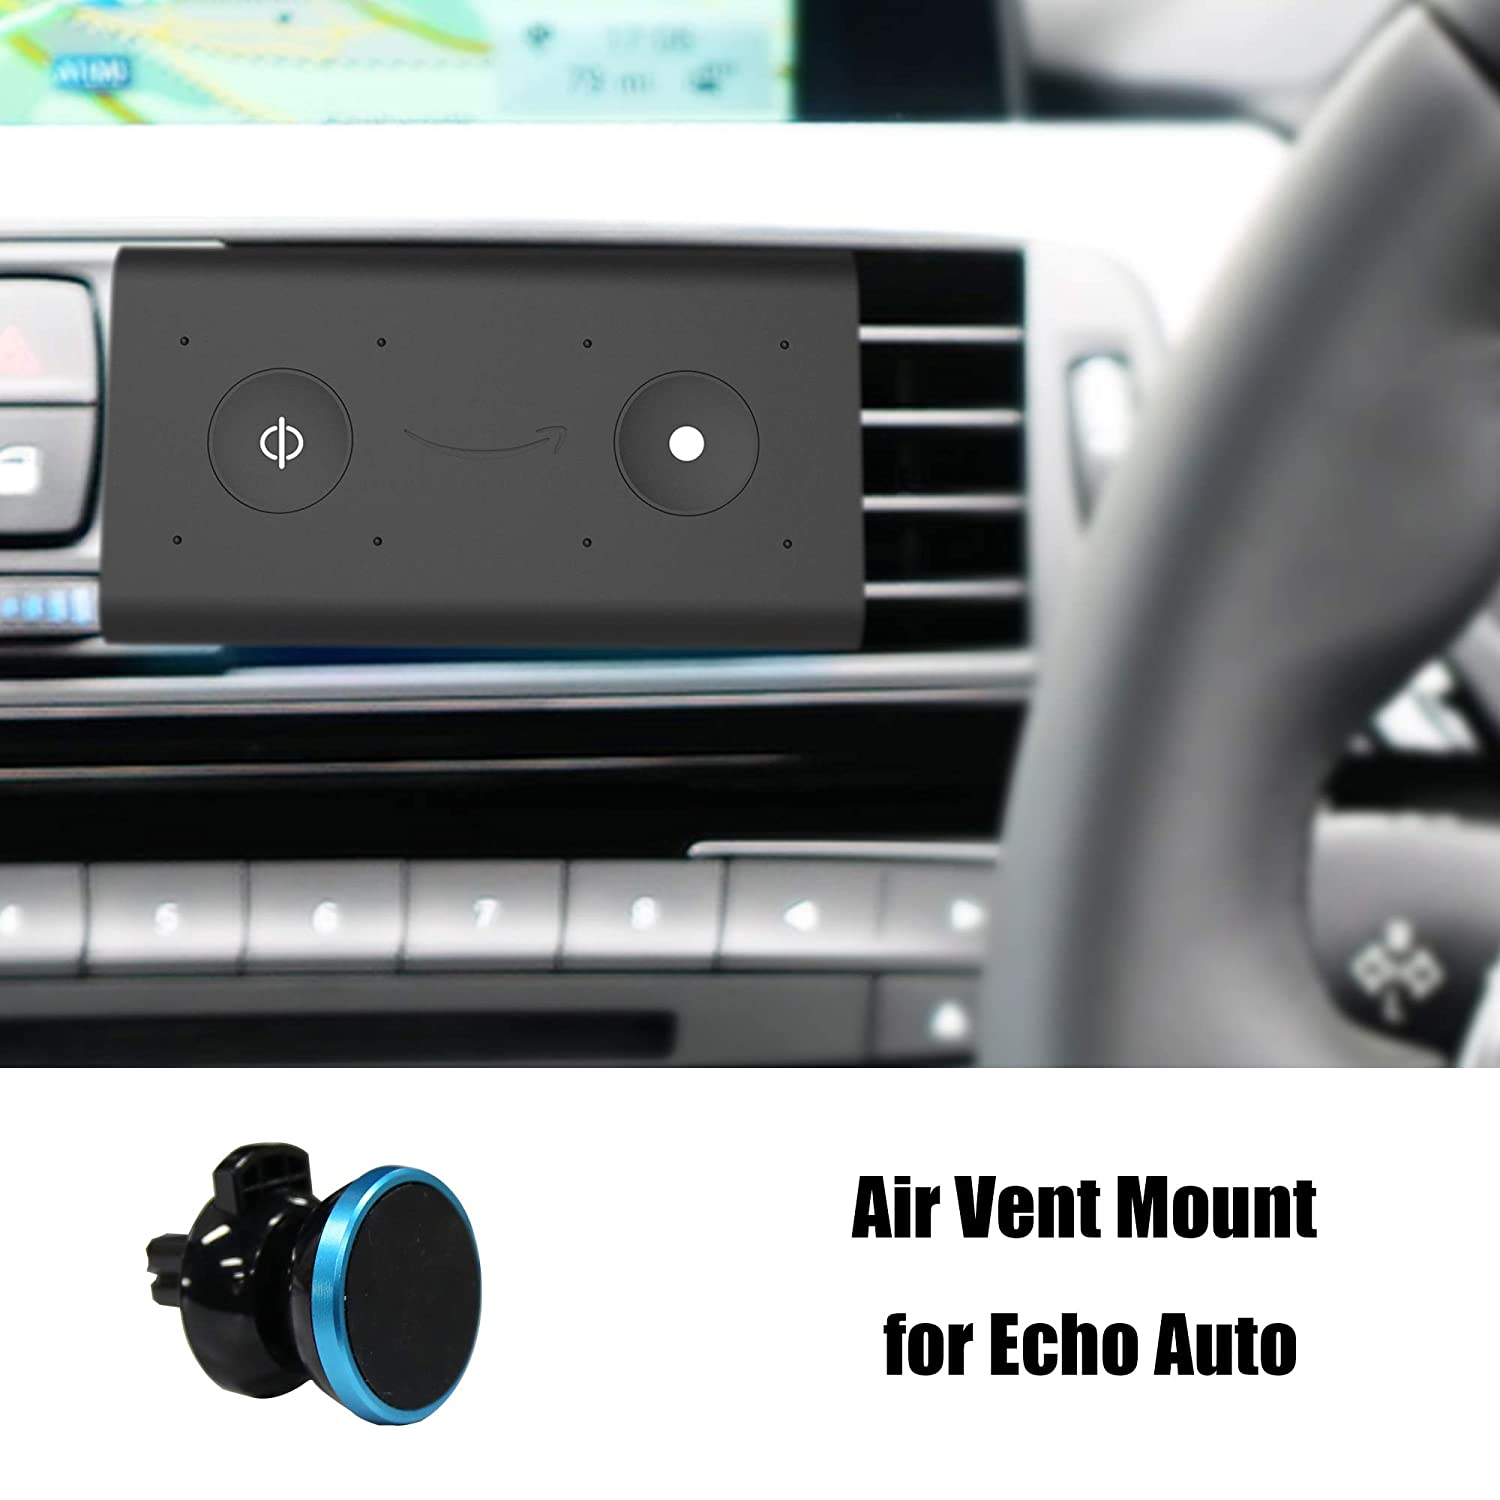 innelo Air Vent Mount Stand for Echo Auto